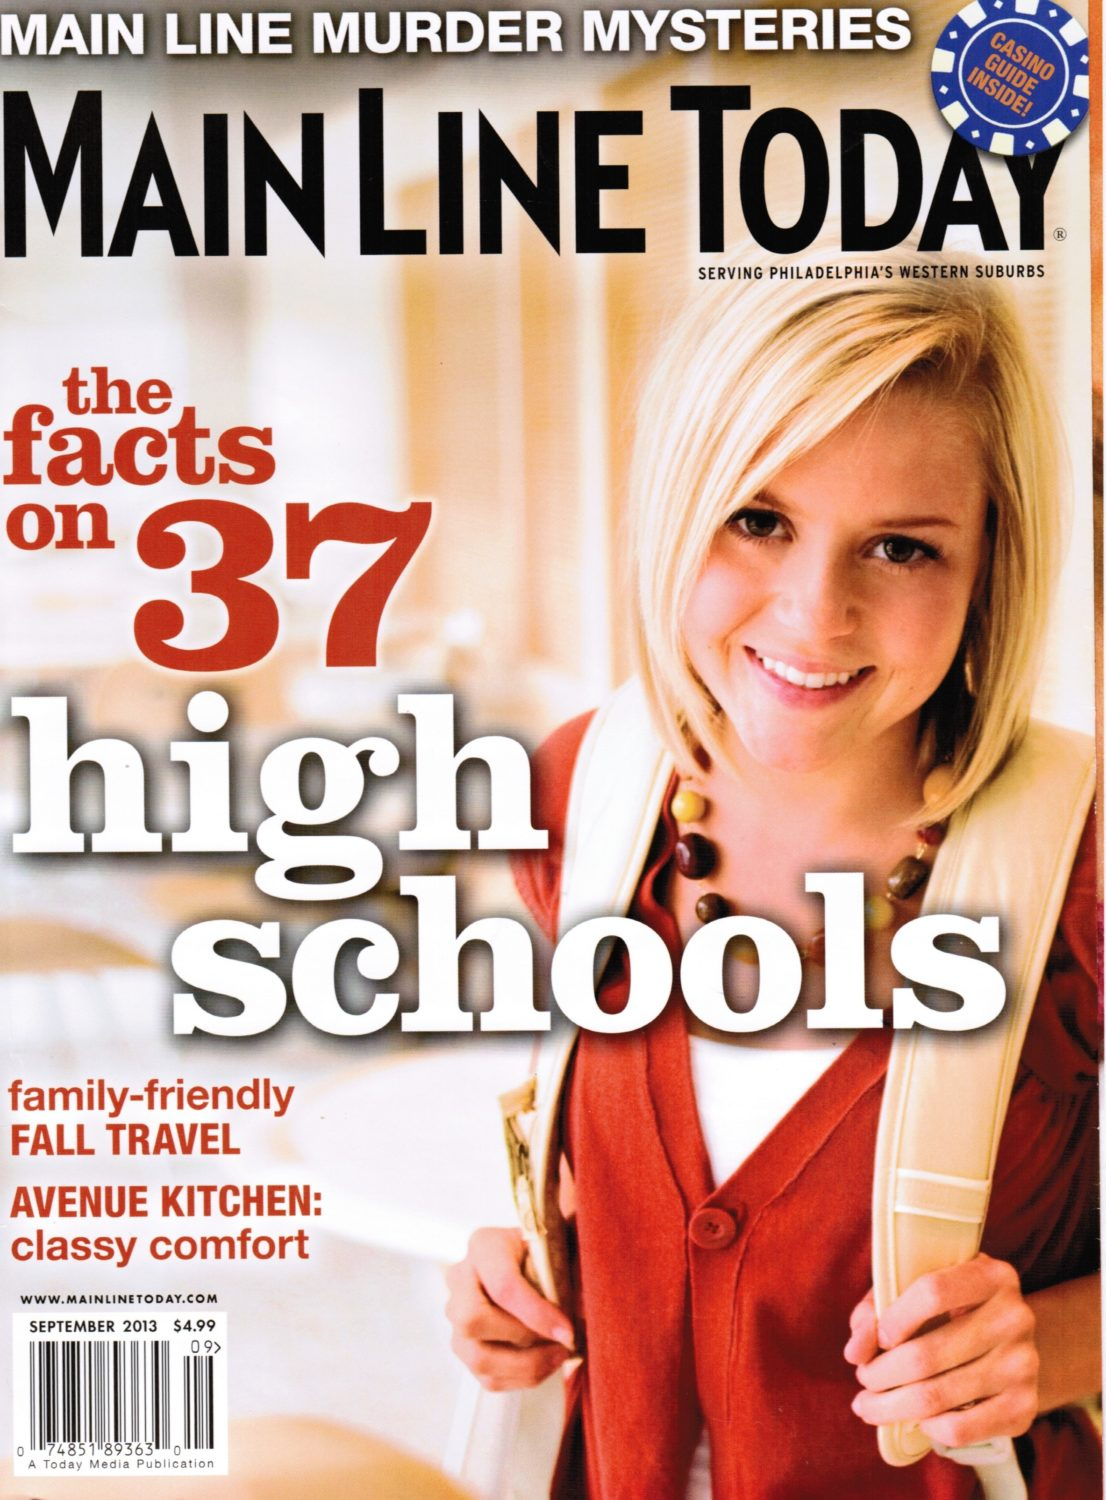 MainLineTodayCover9:13